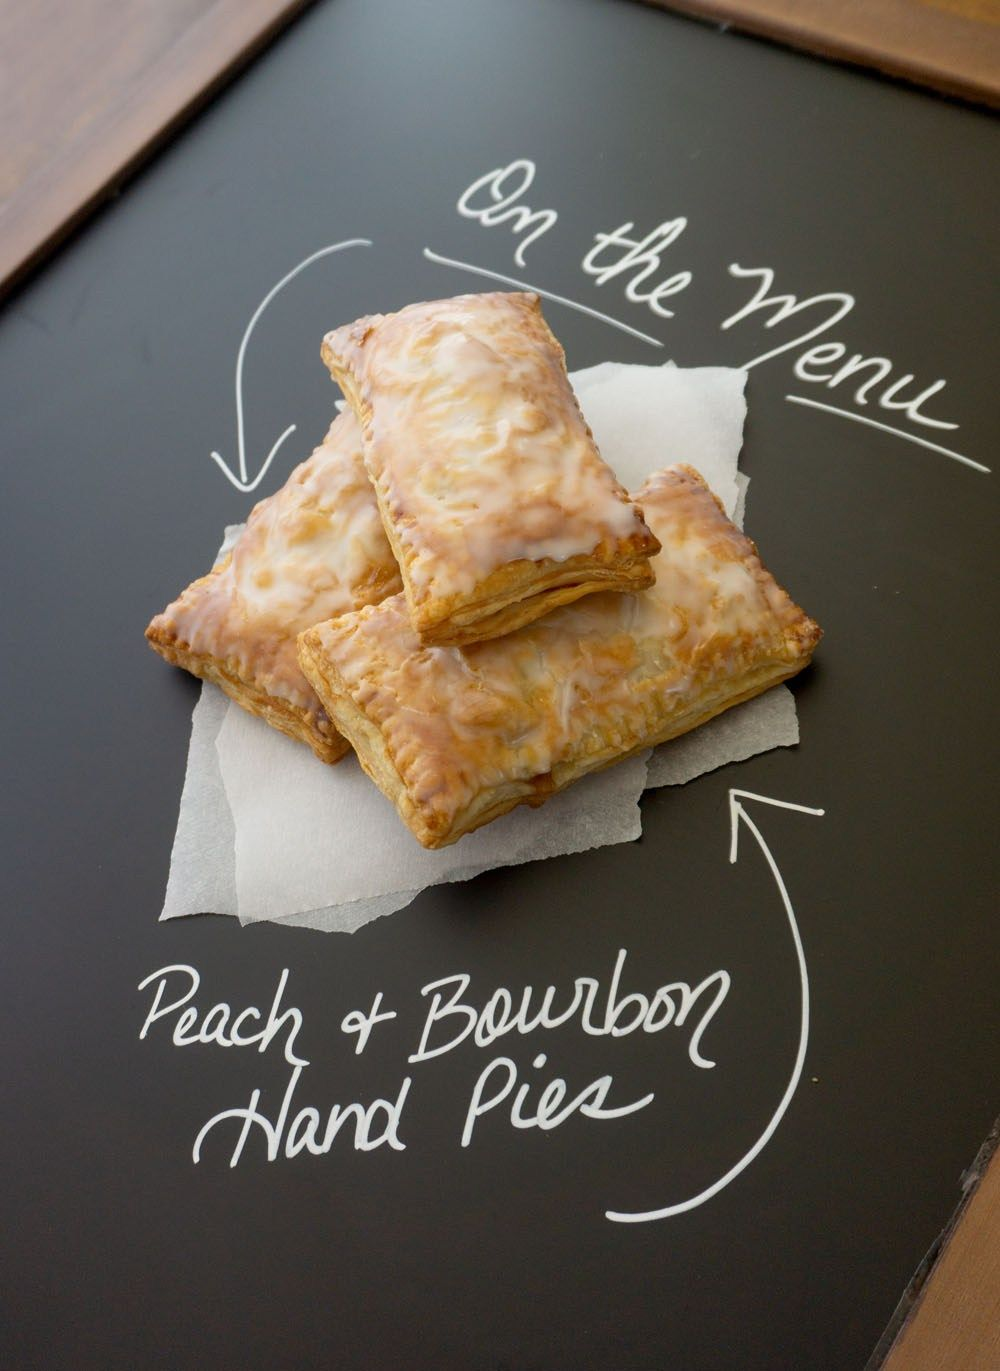 Peach & Bourbon Hand Pies with Rough Puff Pastry - Global ...